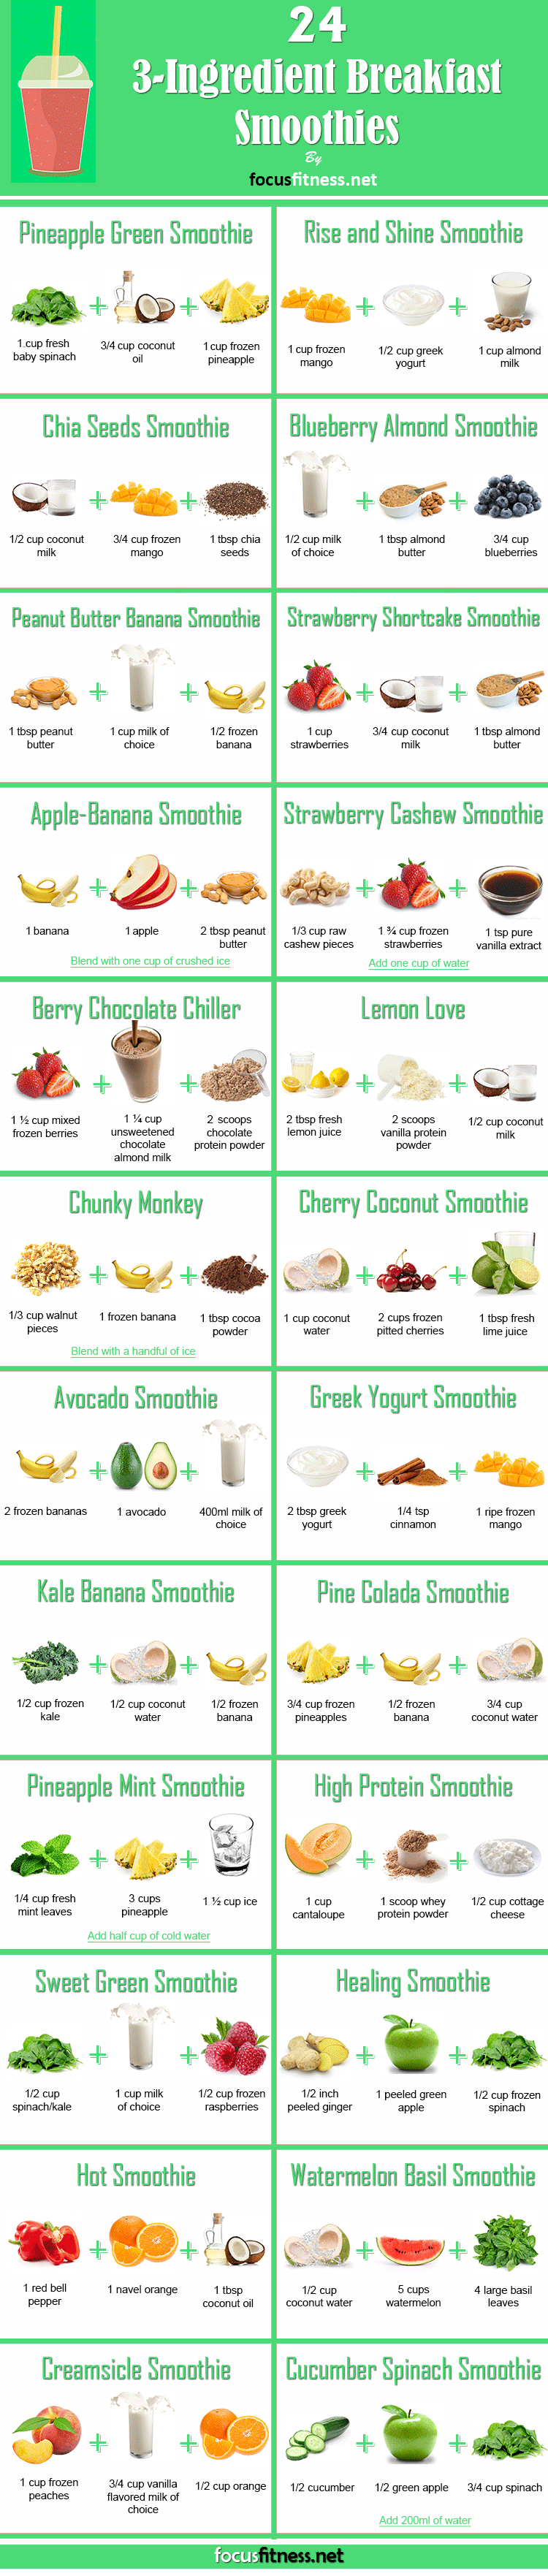 infographic showing 24 different 3-ingredient easy weight loss smoothie recipes at a glance